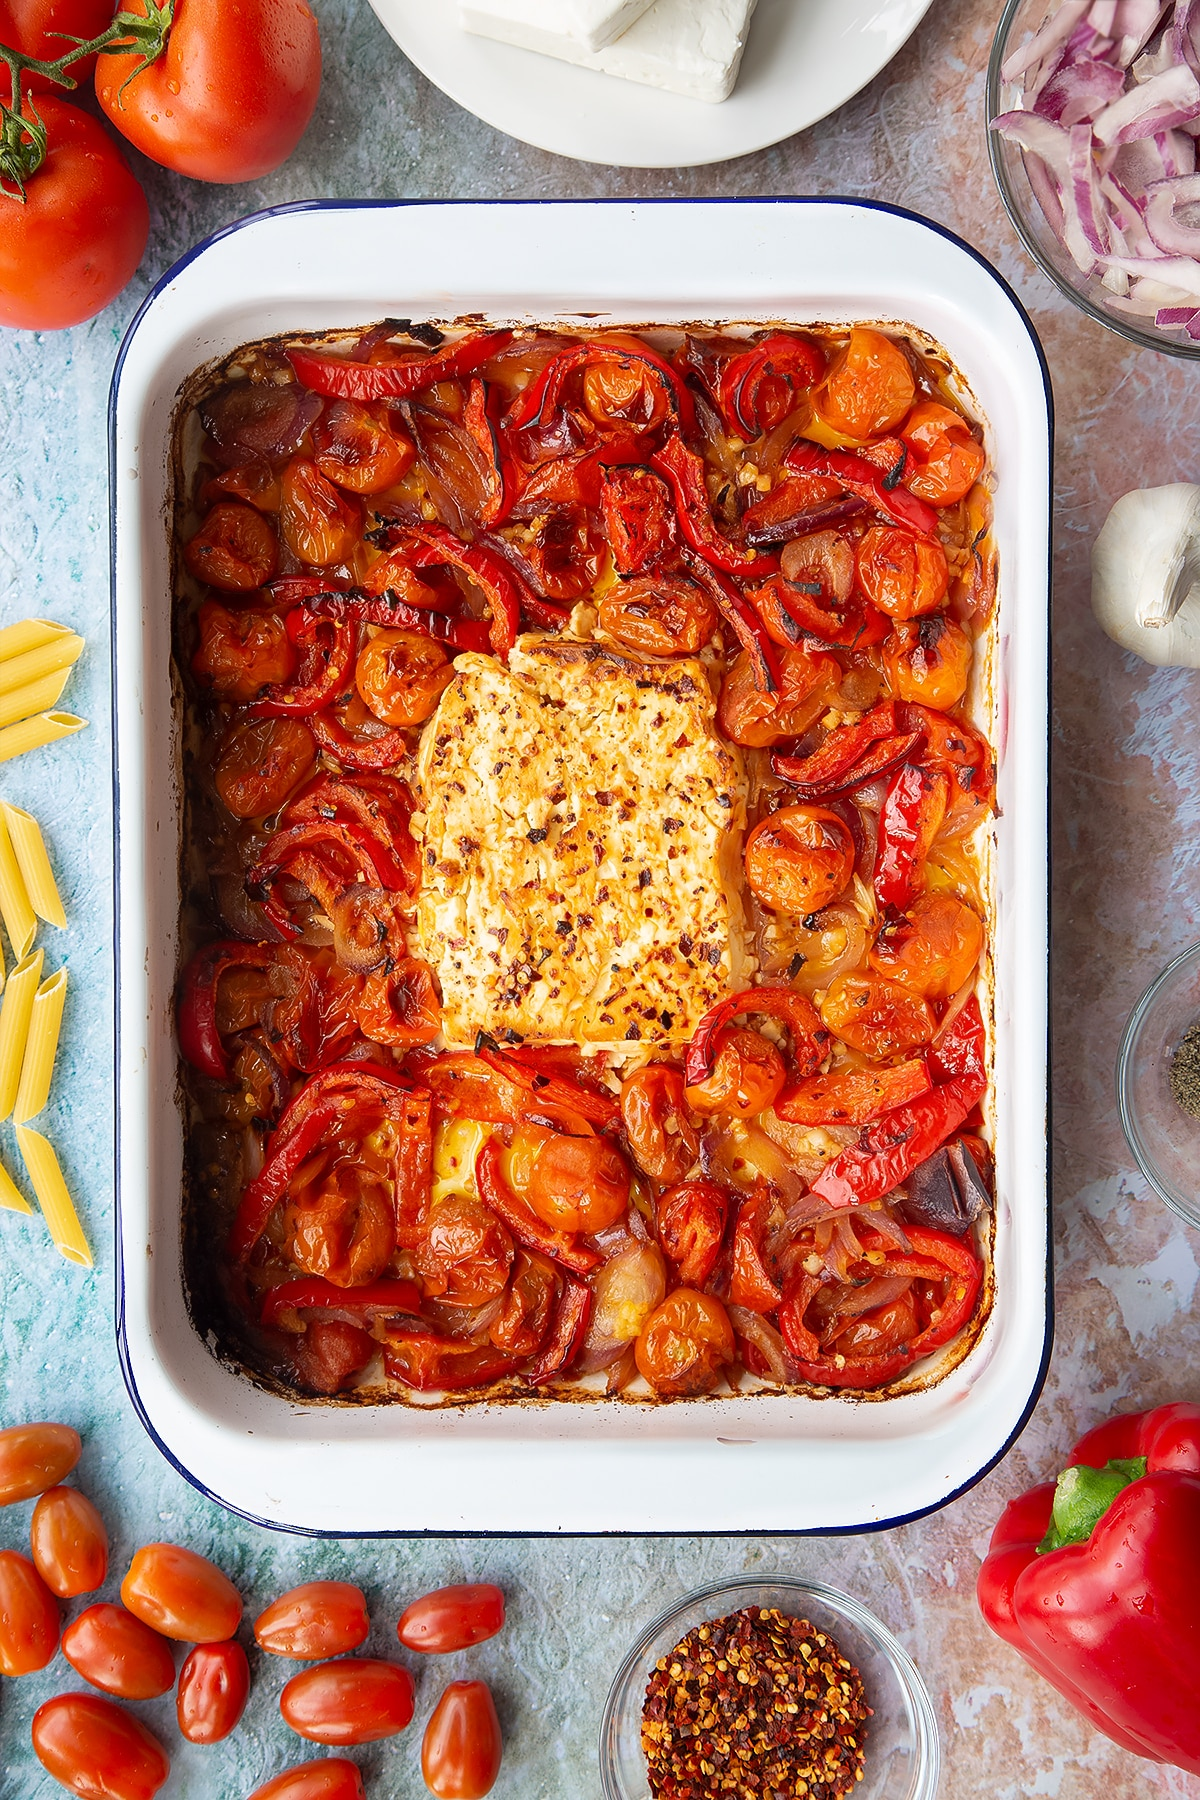 A block of baked feta surrounded by roasted tomatoes, red pepper, red onion and garlic in a large white roasting tray. Ingredients to make baked feta pasta surround the tray.